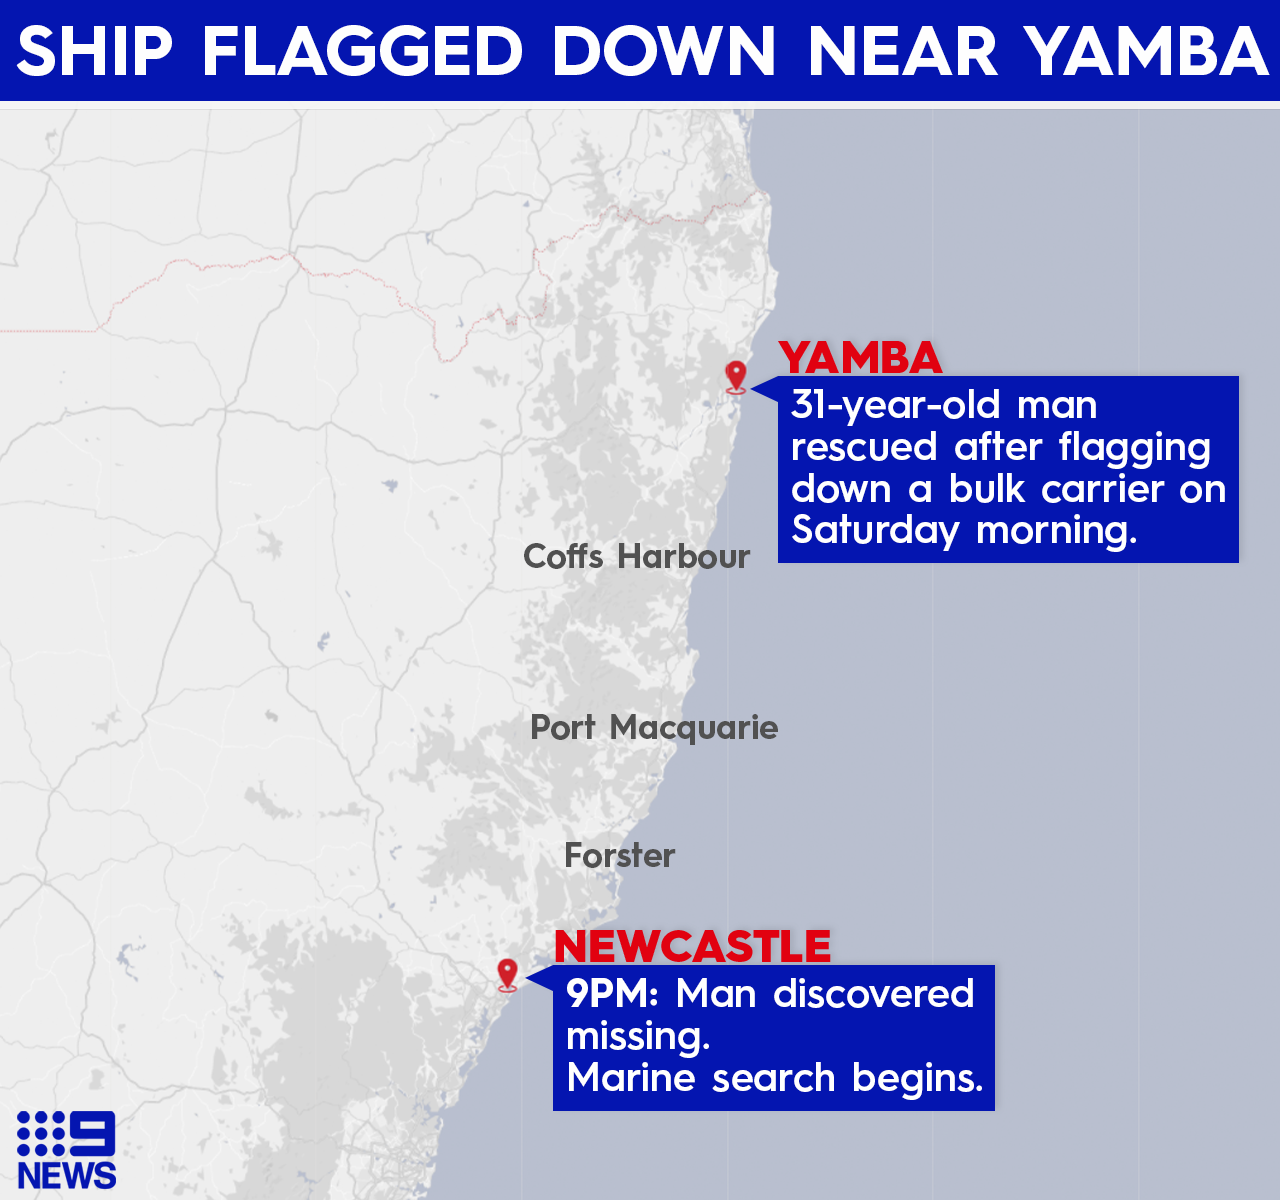 Newcastle yacht rescue stow away.